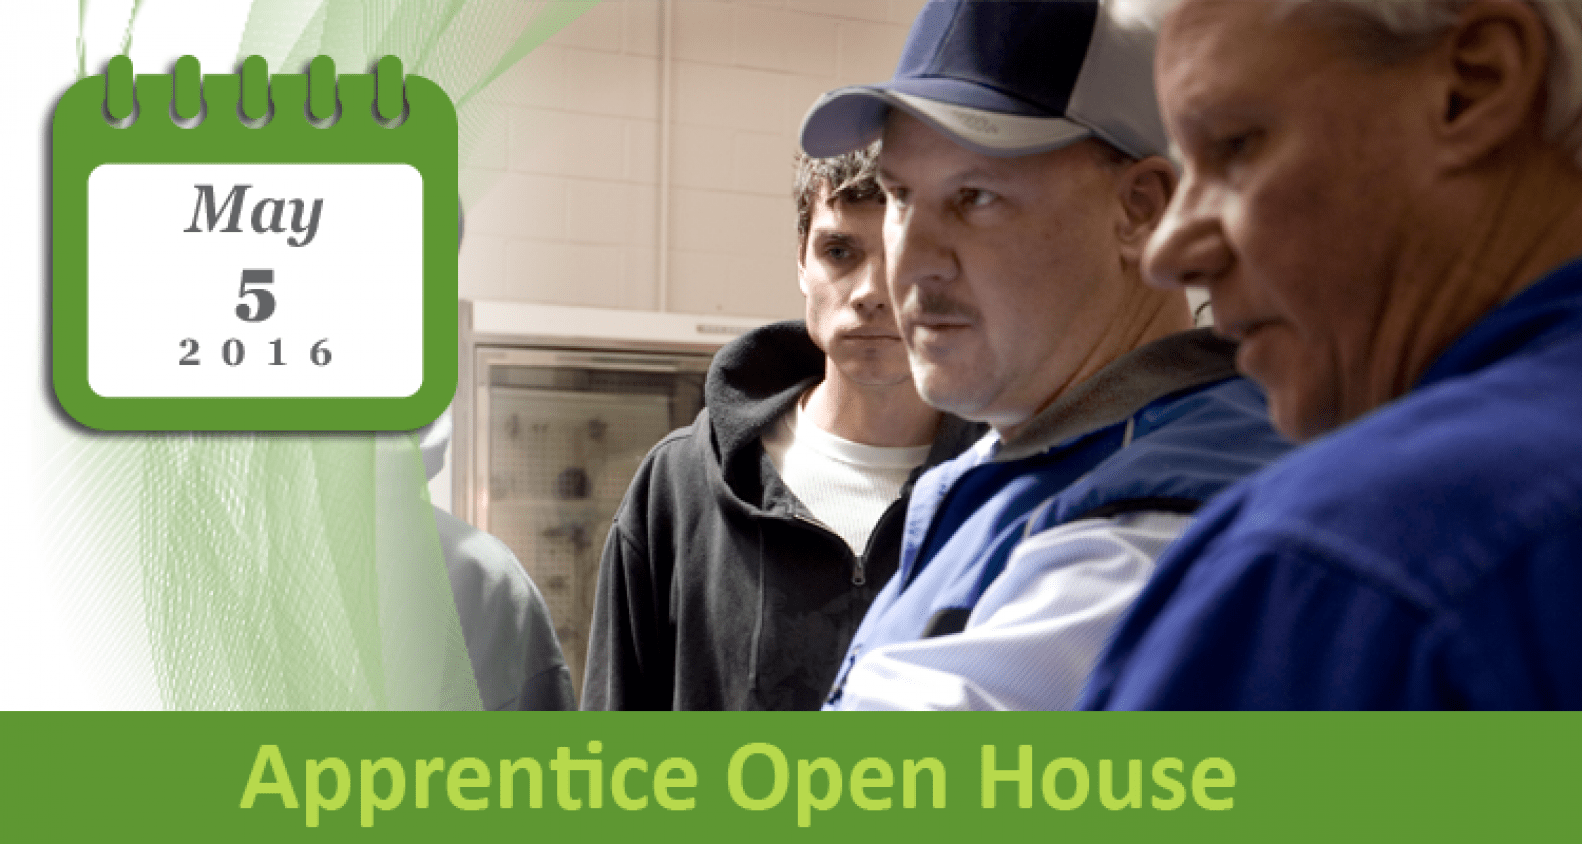 CWI Workforce Development Apprentice Open House May 5, 2016